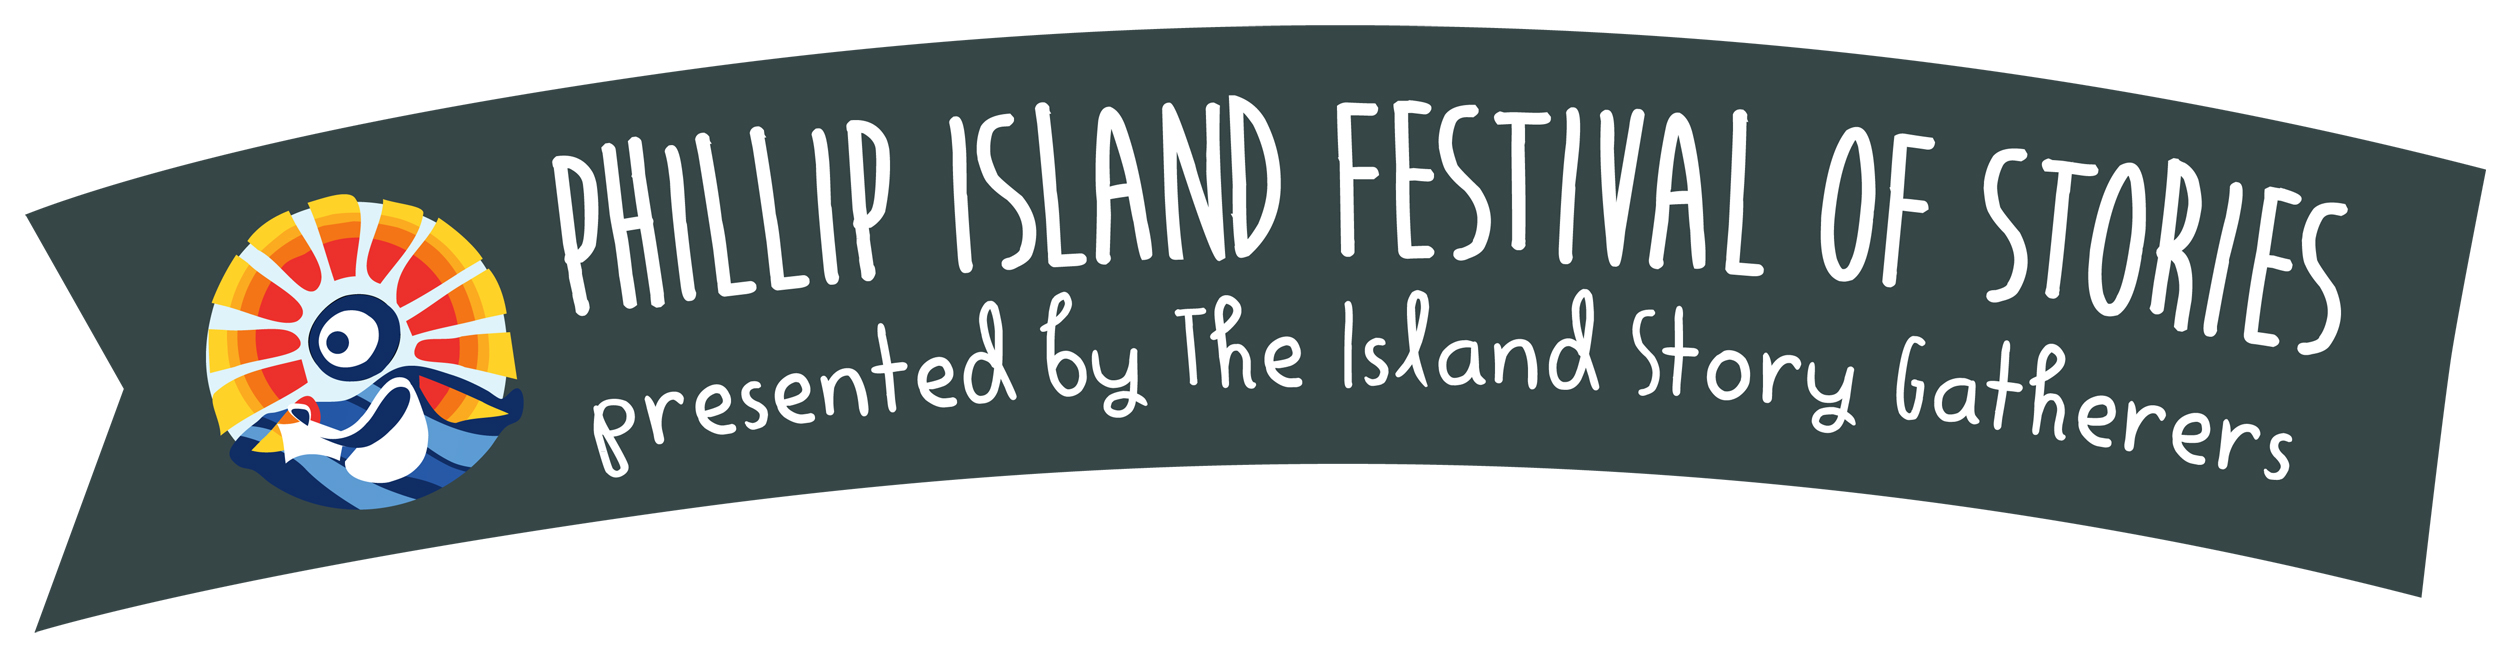 Phillip Island Festival of Stories